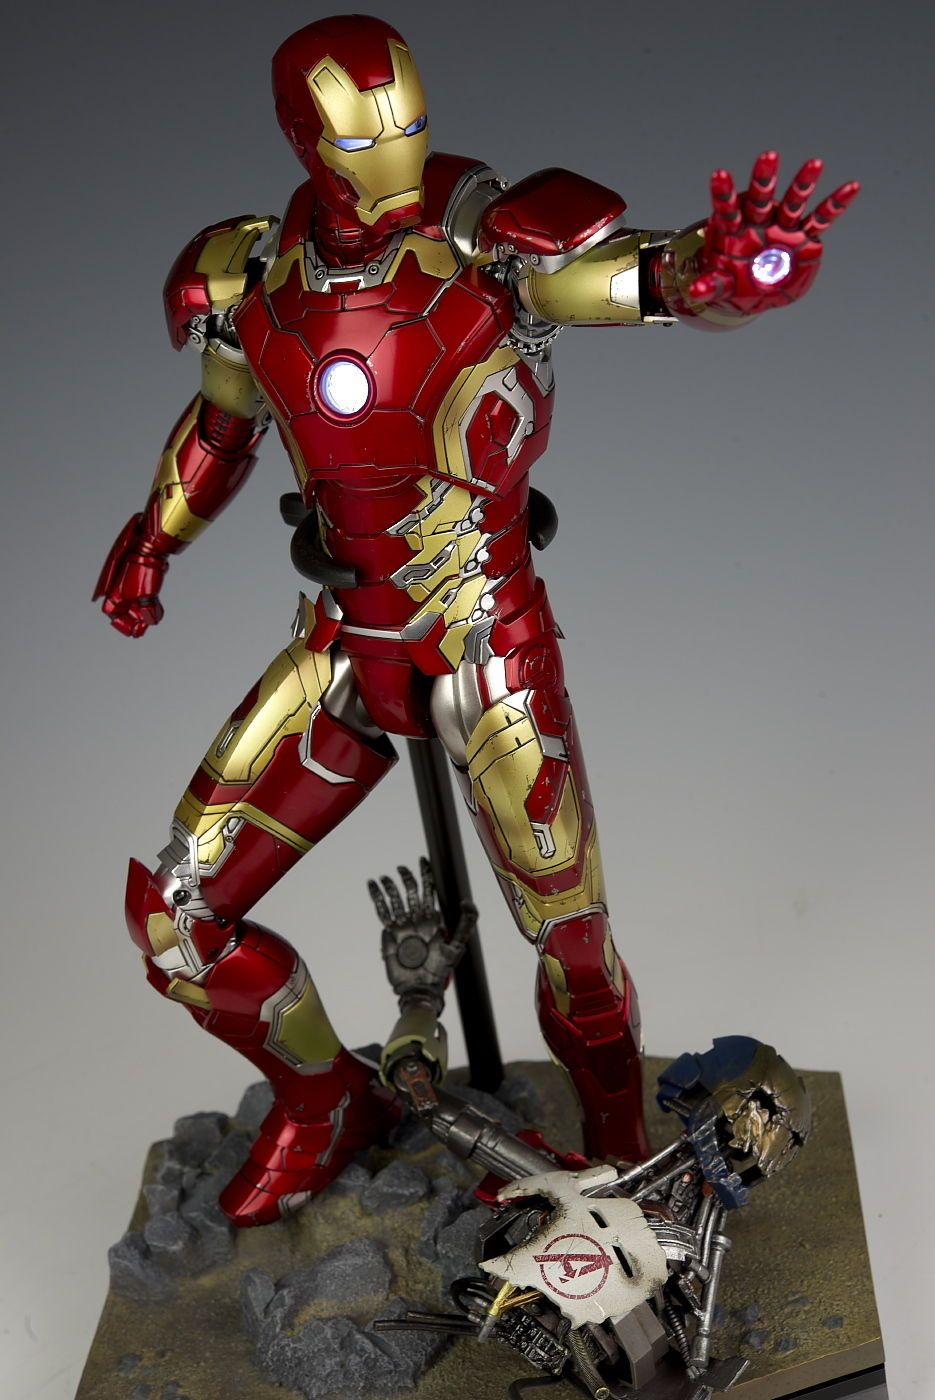 [Avengers Age Of Ultron] Hot Toys Movie Masterpiece